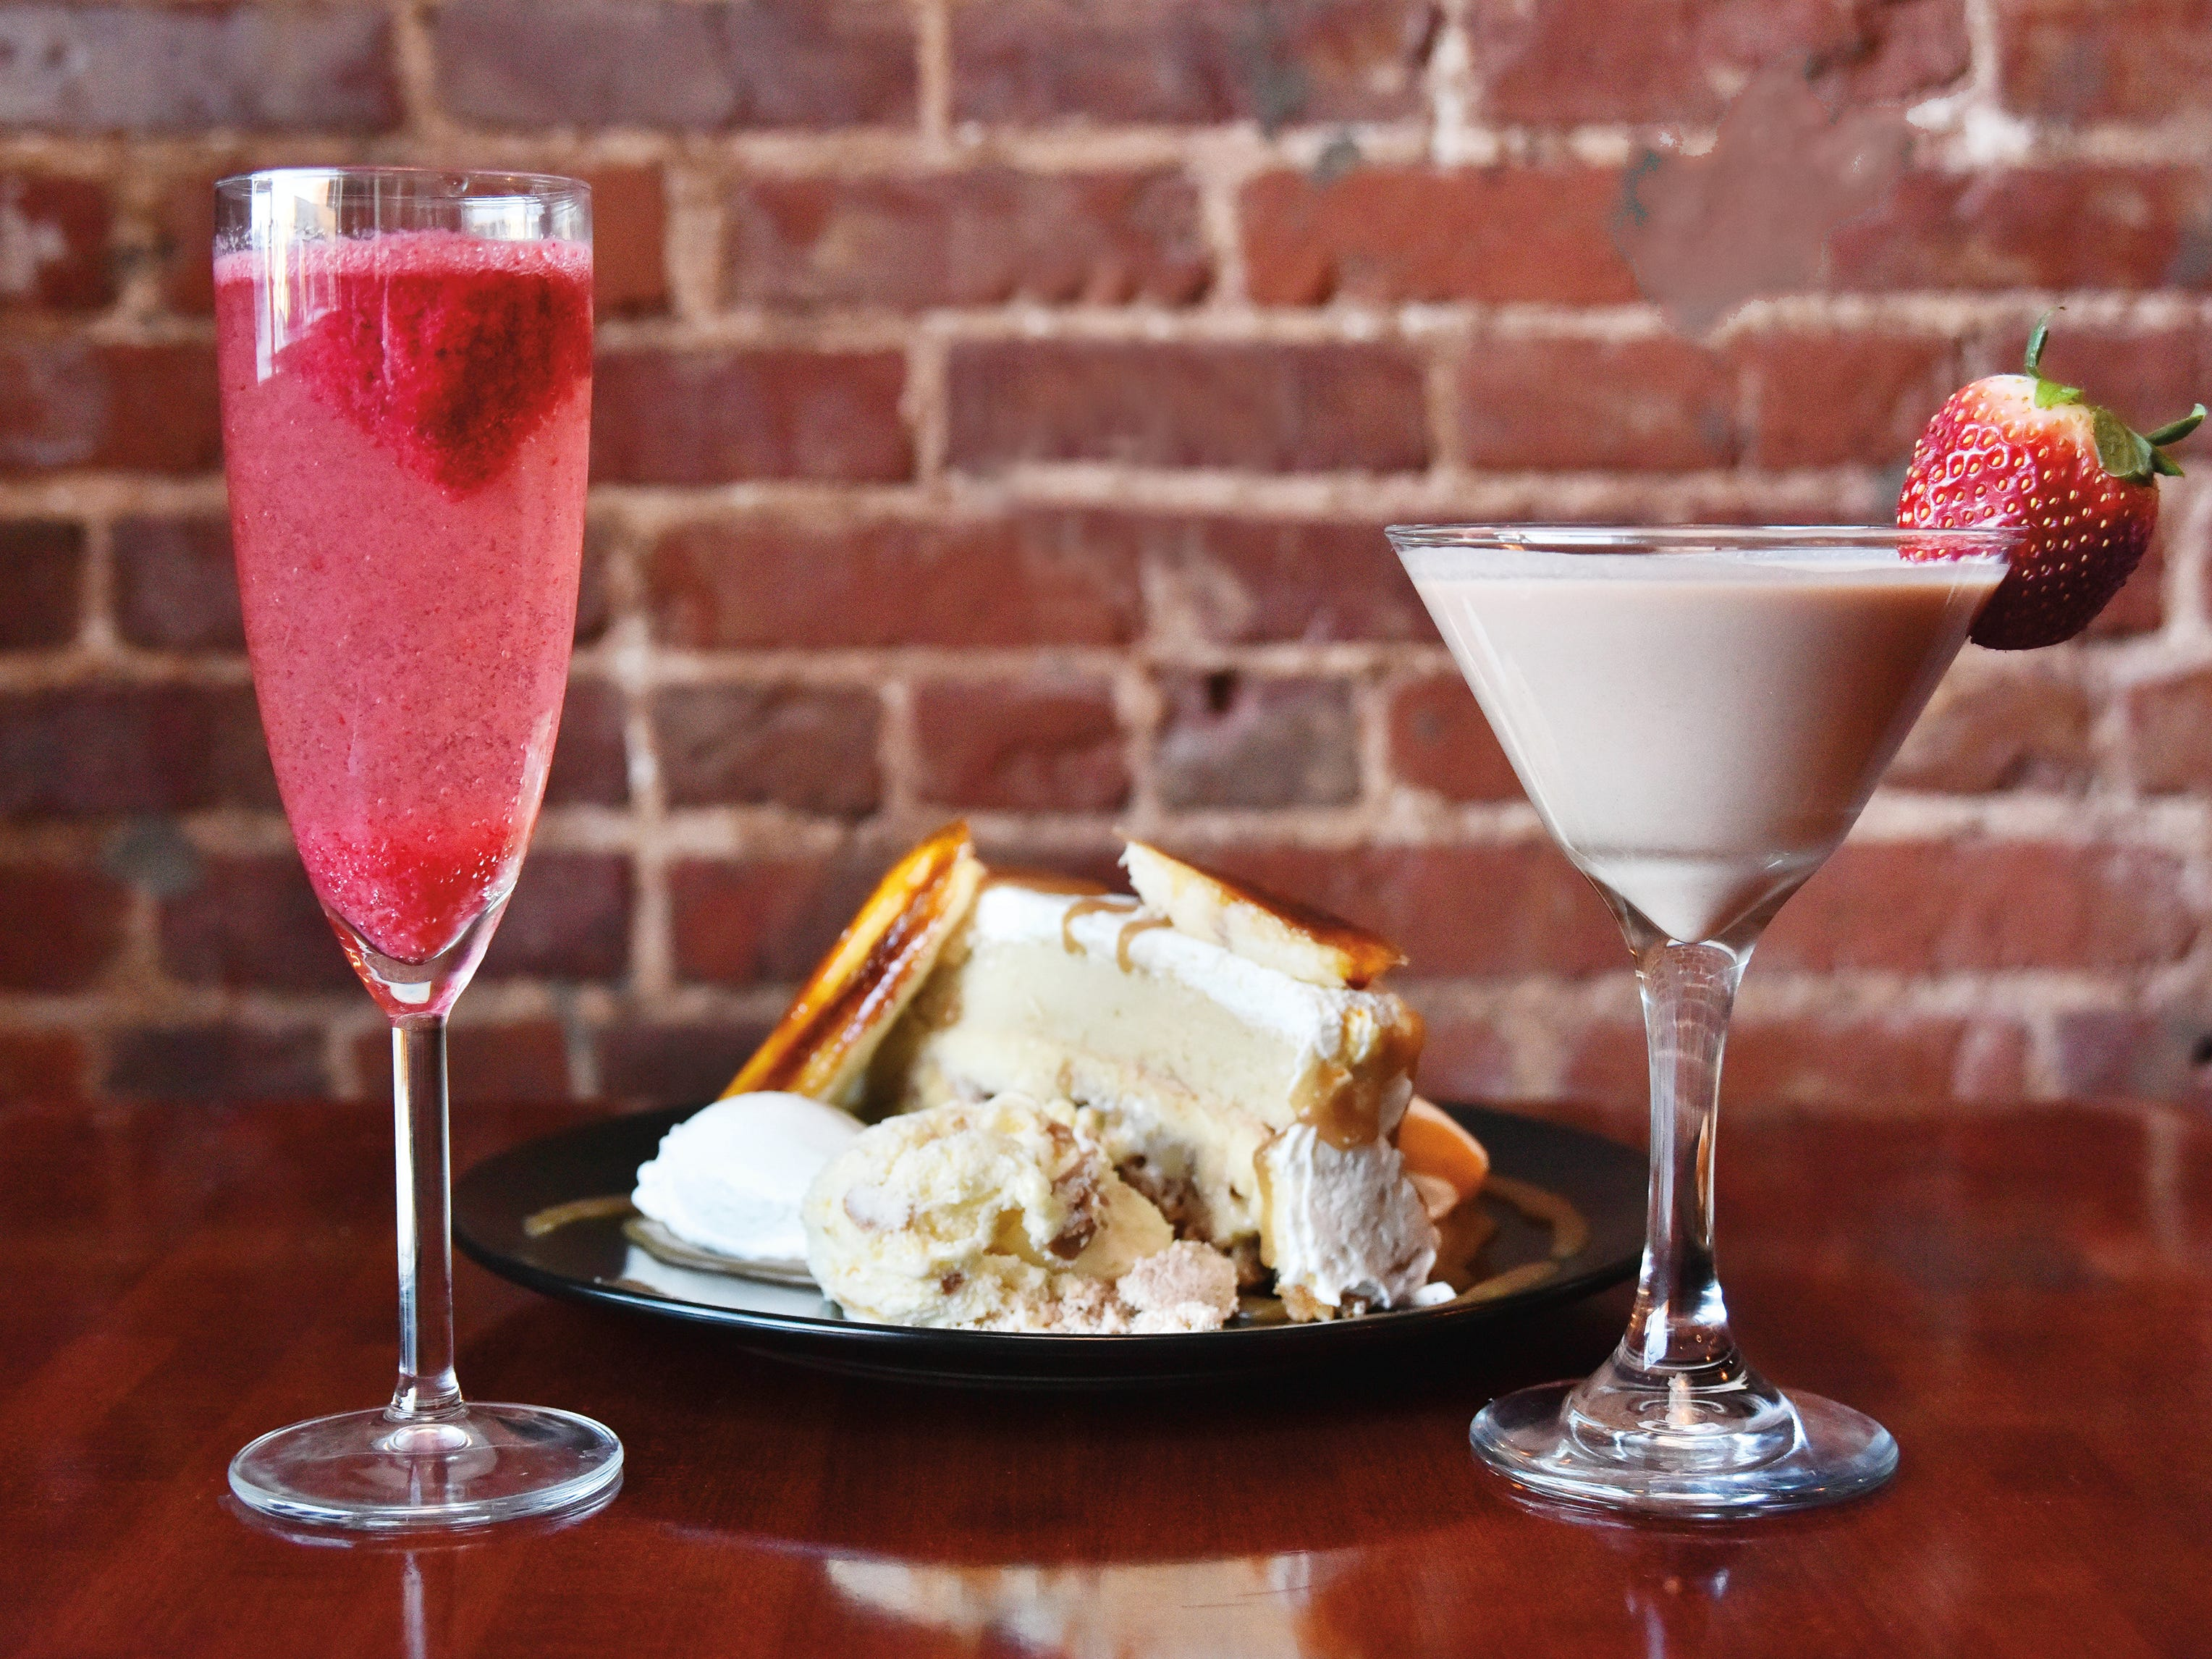 The Sorbagne, left, a champange flute of bubbles with a scoop of housemade sorbet, and The Encore, right, with housemade Nutella vodka and hazlenut liqueur served with the Bananarama dessert.